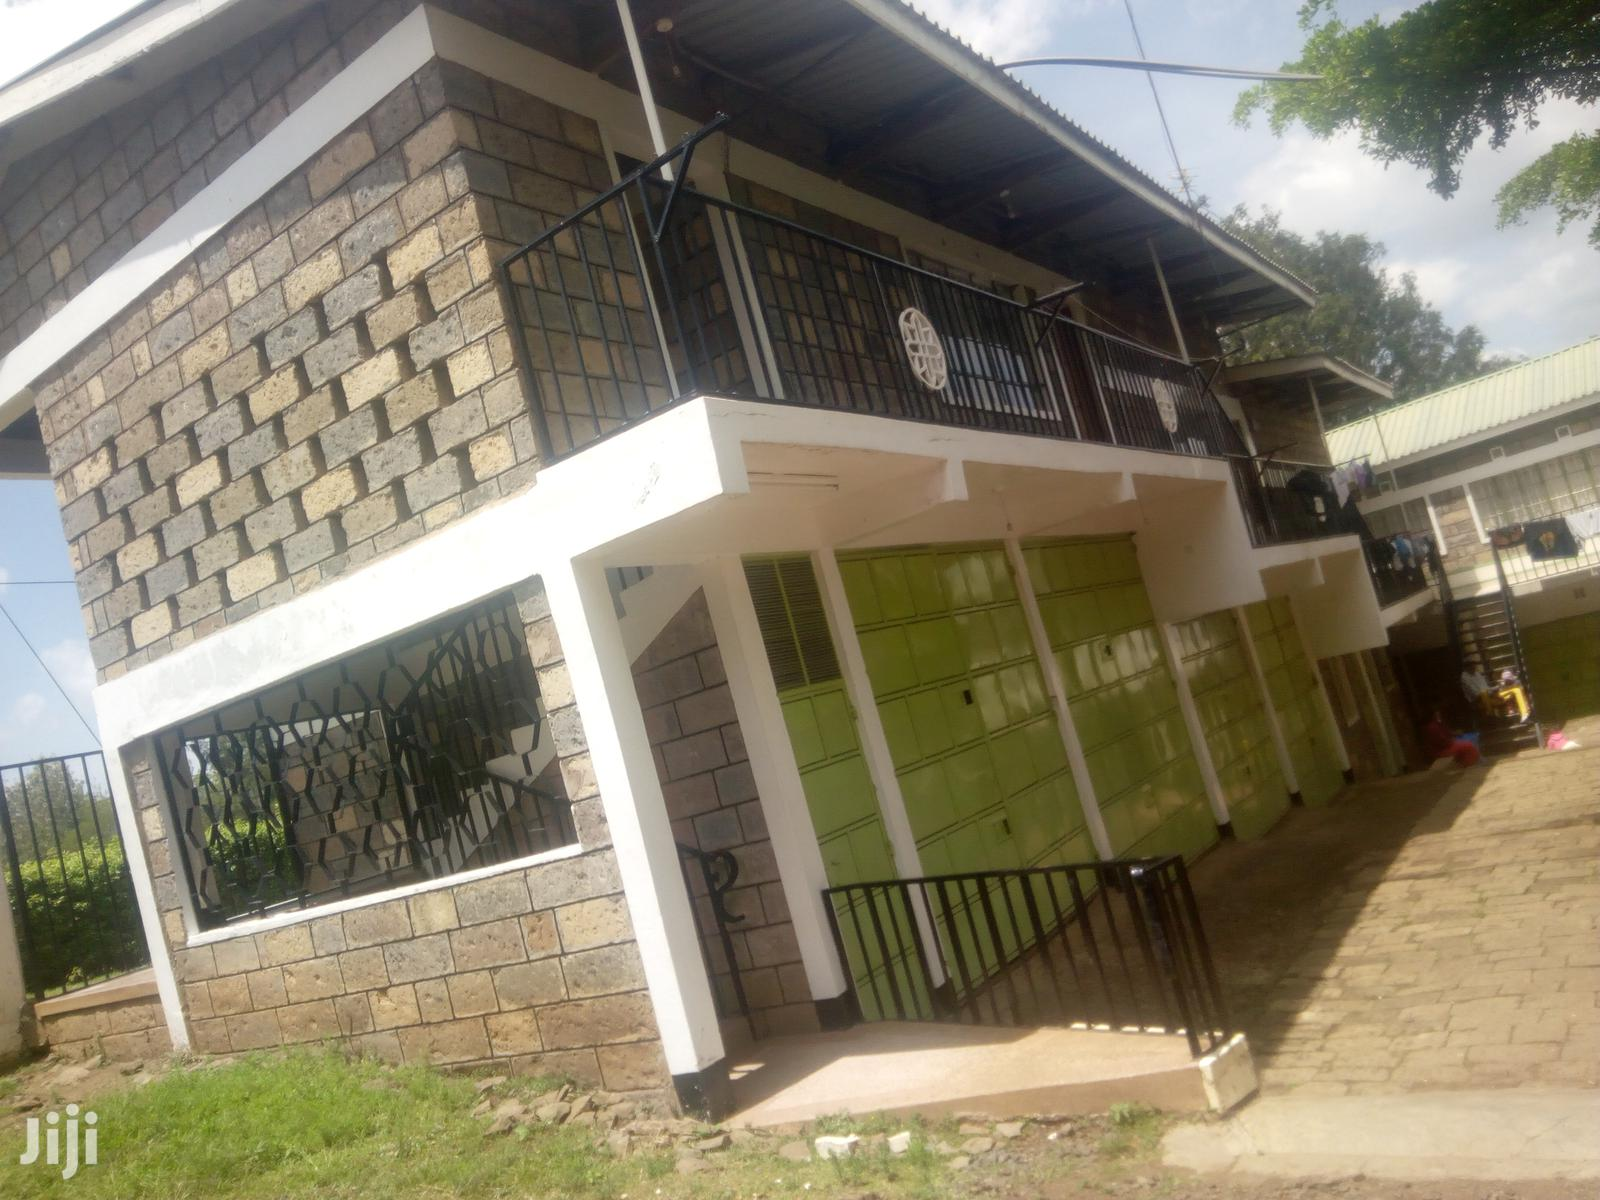 3bdrm Apartment in Ongata Rongai for Rent